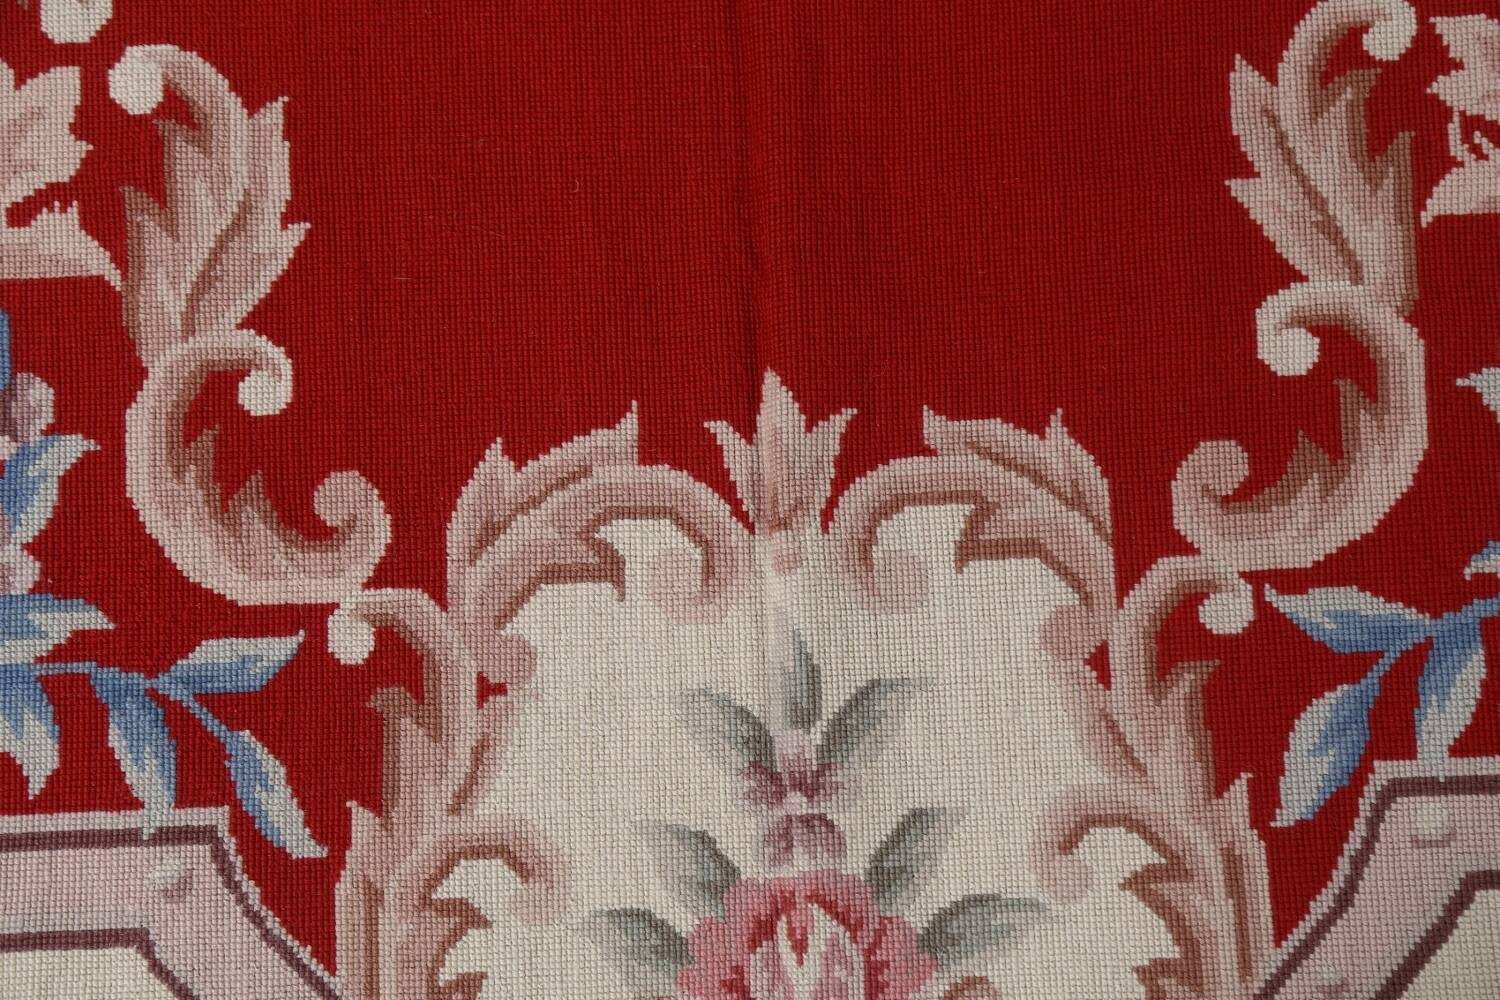 Floral Red Aubusson Chinese Wool Area Rug 5x9 image 10